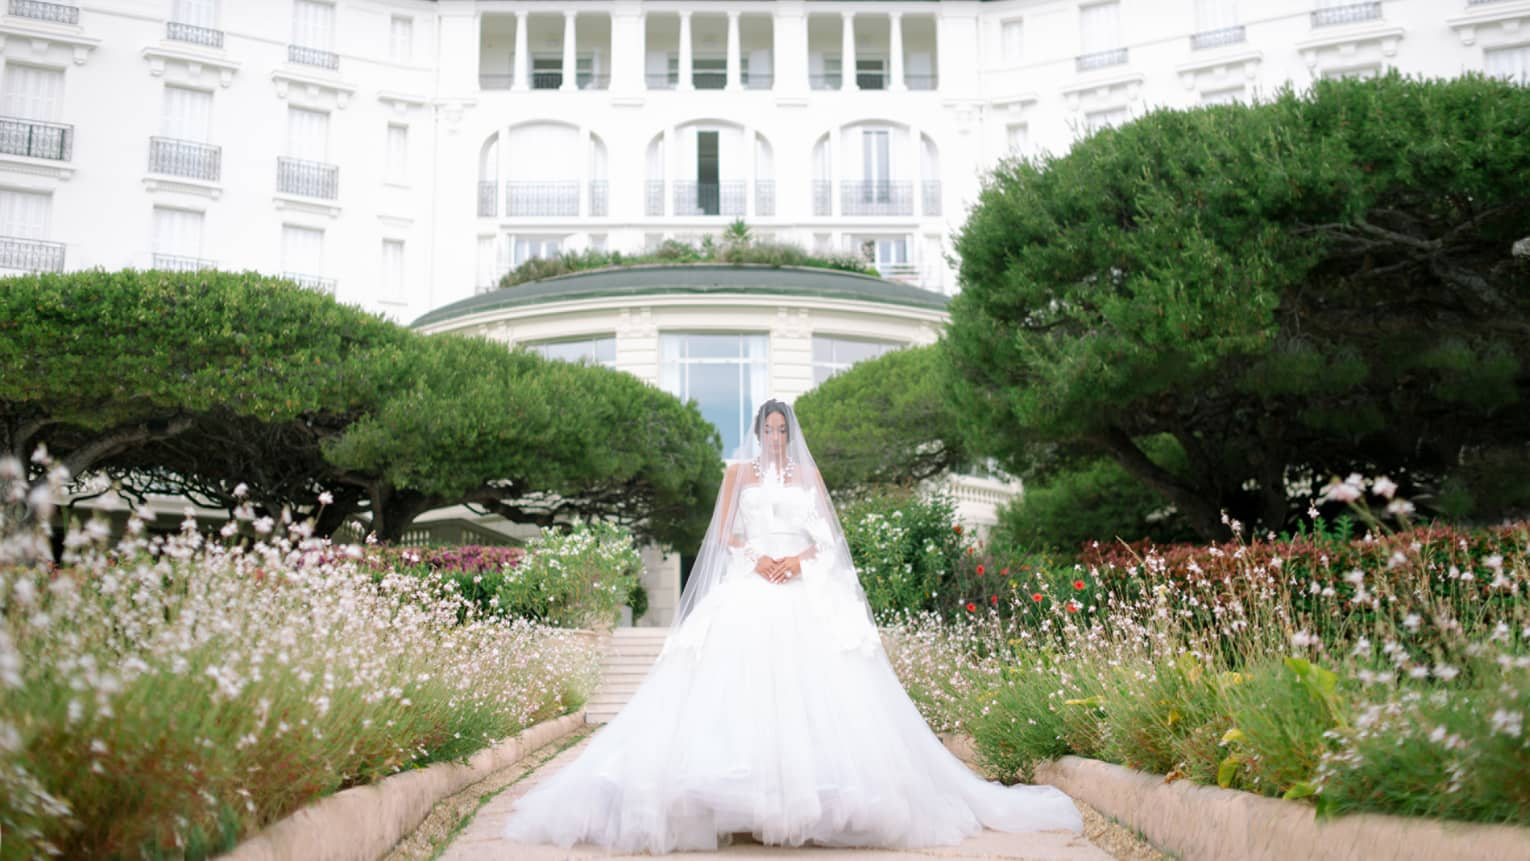 Bride wearing wedding gown and long sheer veil over face stands in garden before Four Seasons Hotel Grand-Hotel du Cap-Ferrat